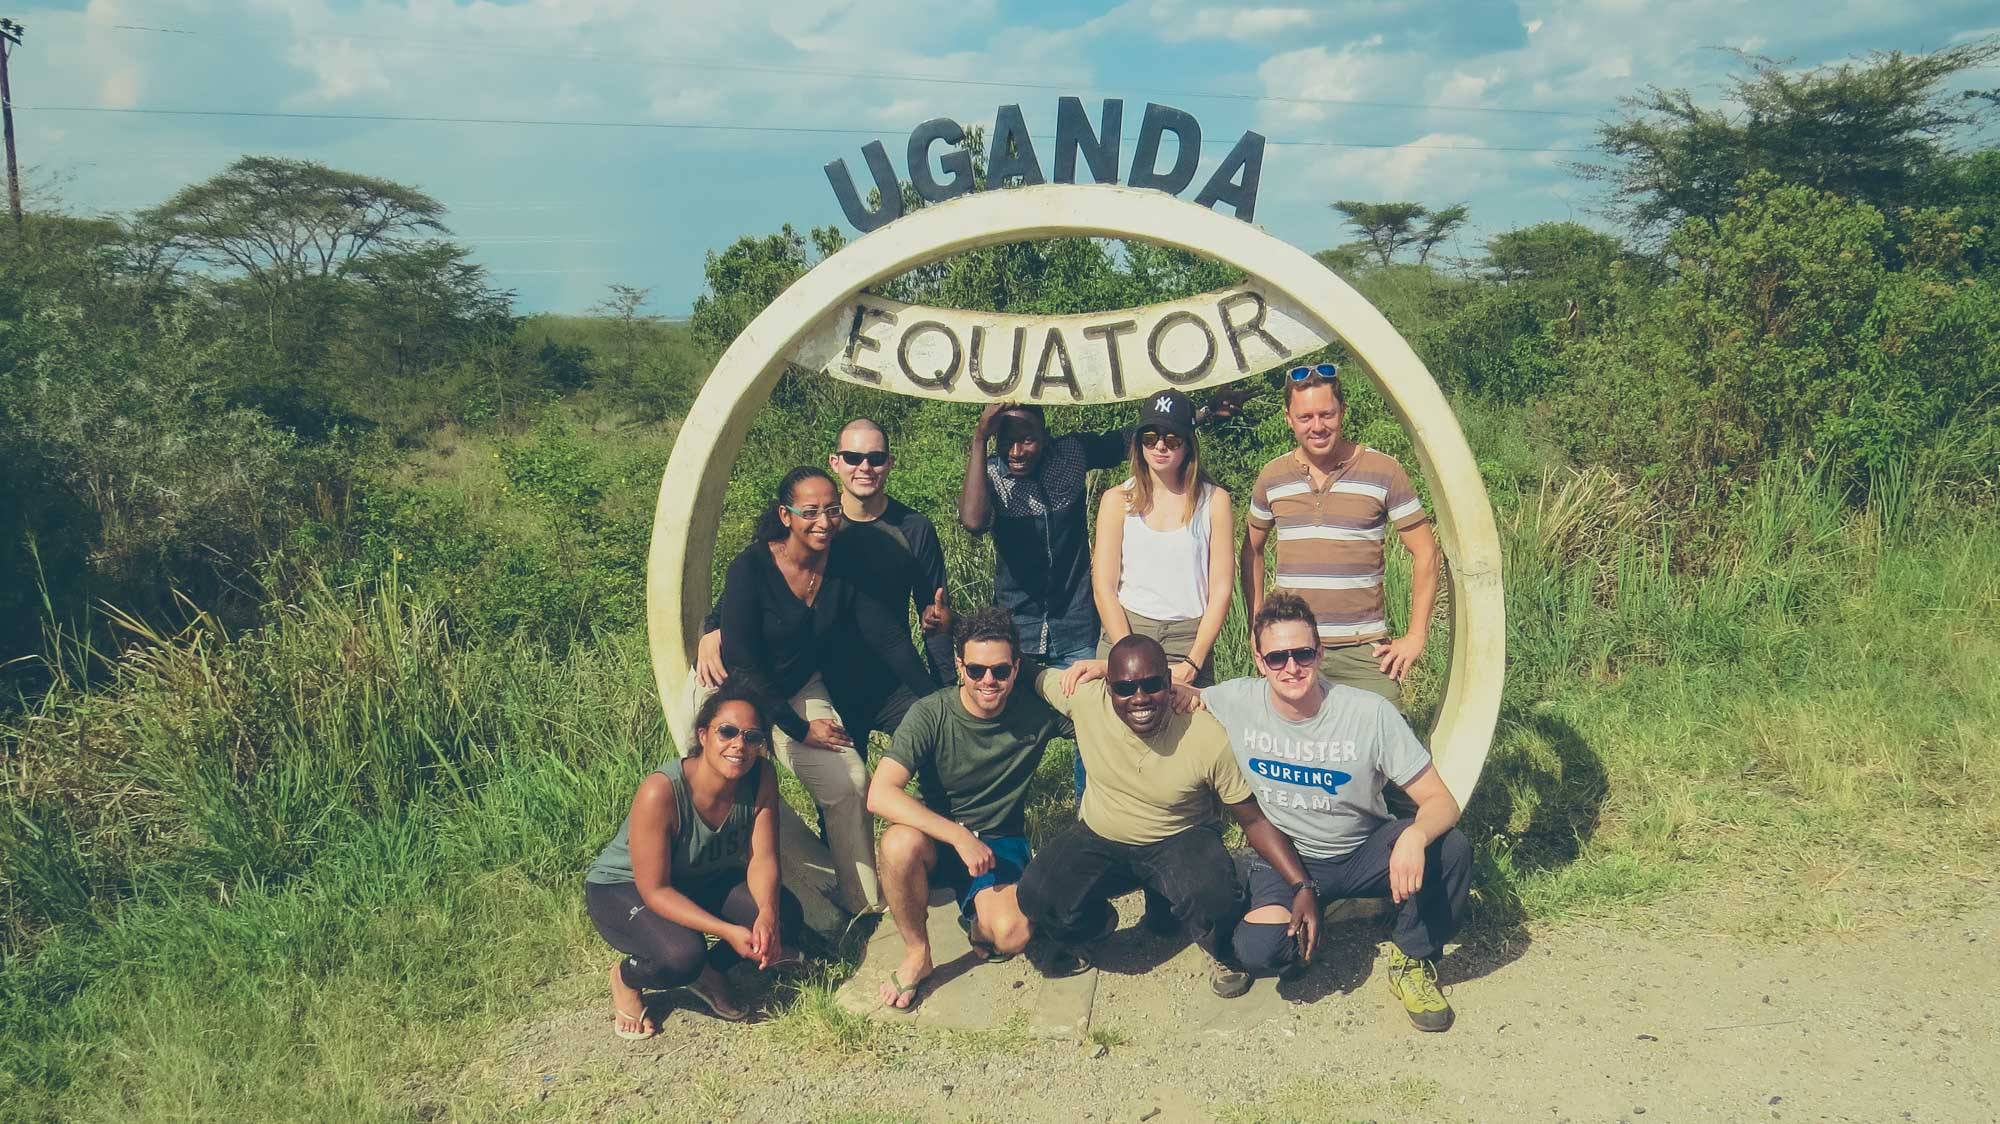 Visiting the equator is a must do when in Uganda!